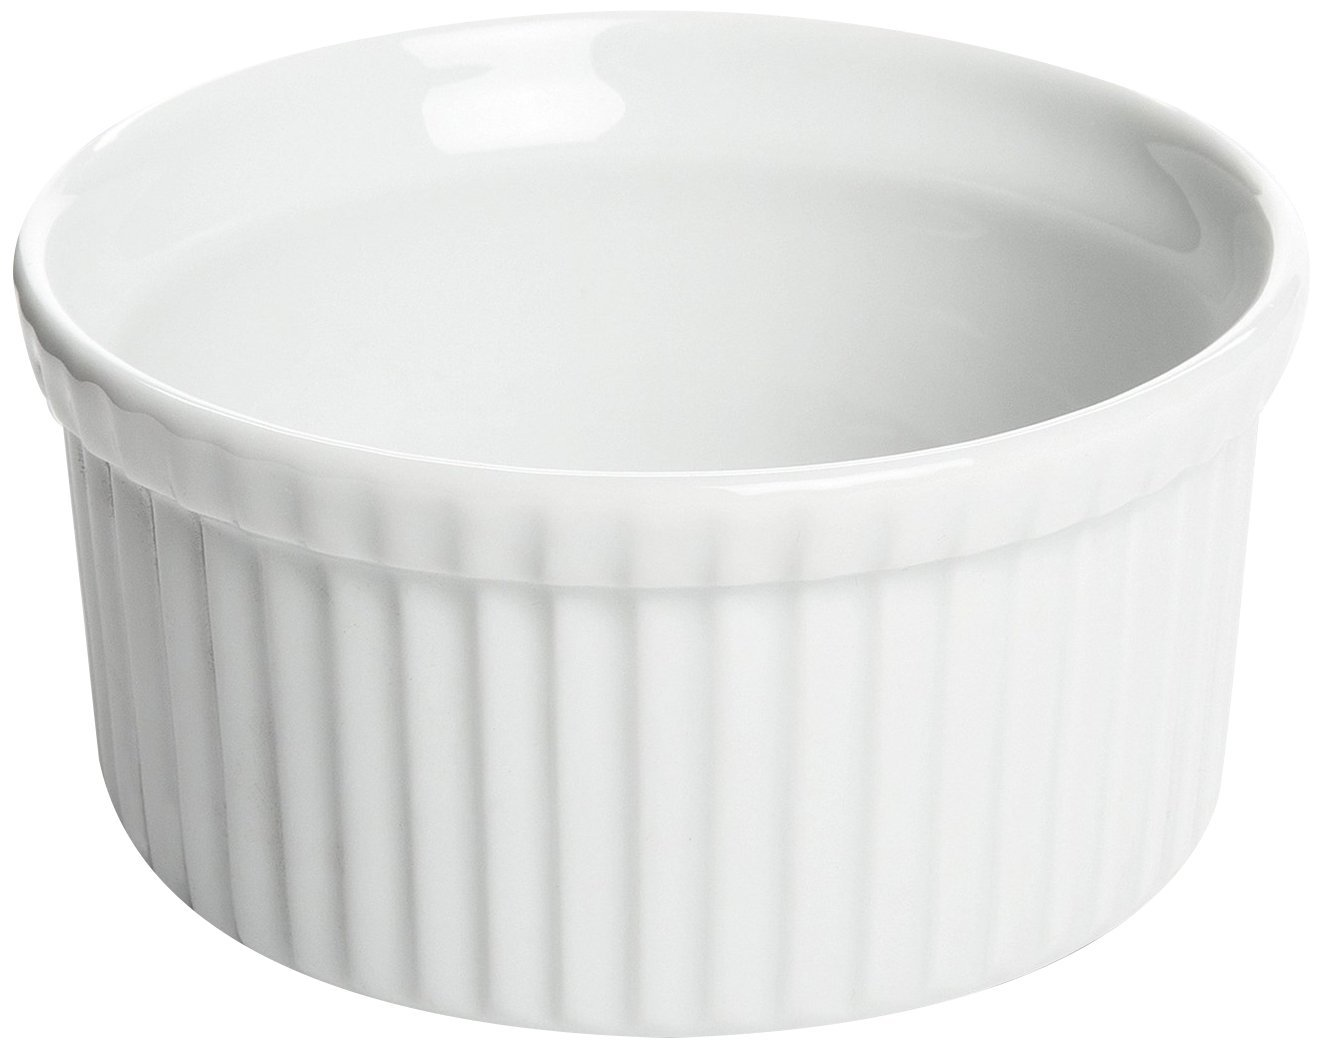 Fox Run 4-Ounce White StoNeware Ramekin Glazed Finish by Fox Run